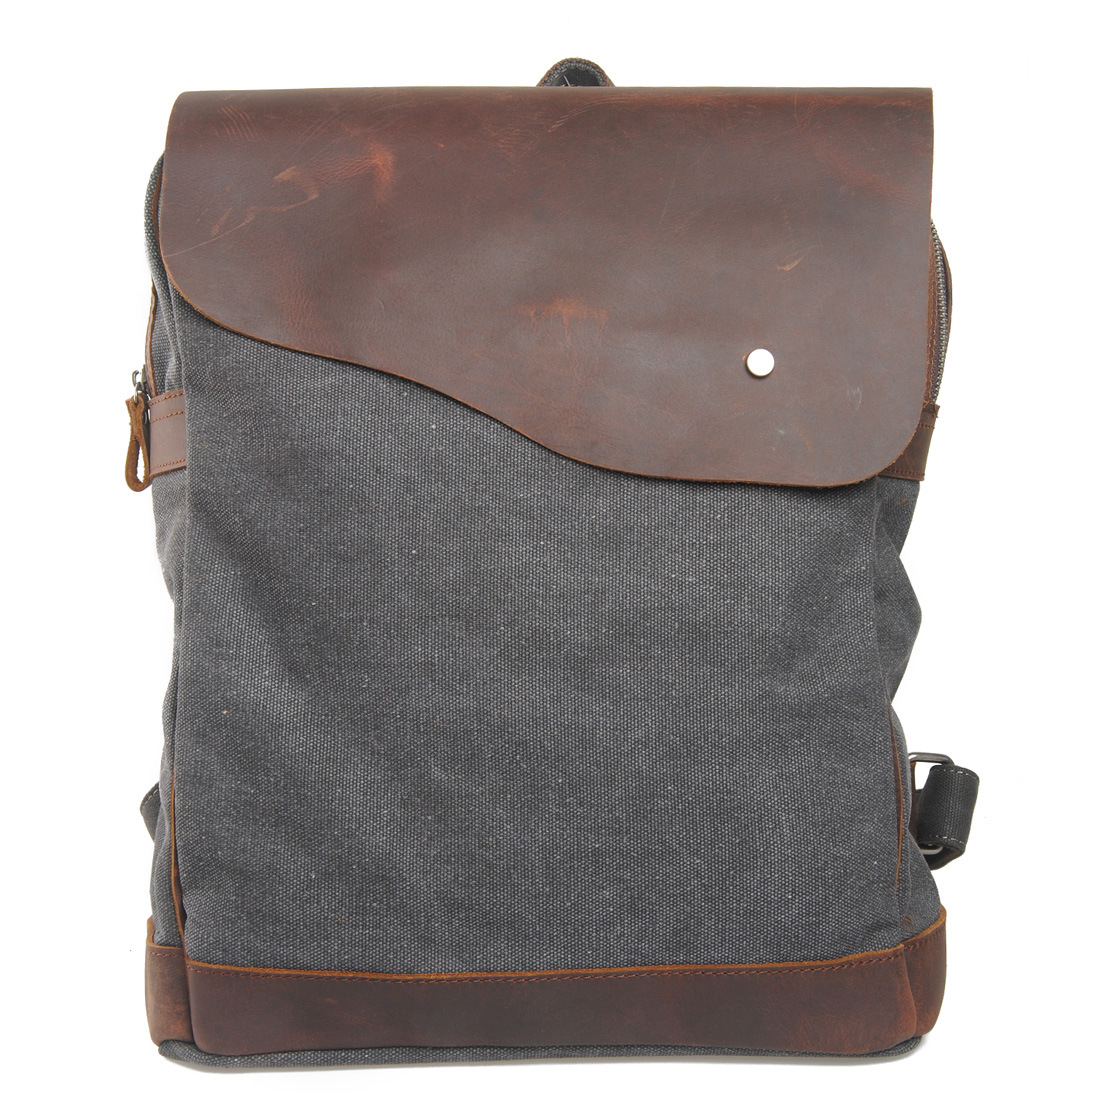 High Quality [Canvas + Real Cow Leather] Luxury Vintage Men Backpack Travel School Bags Large Capacity Laptop Daypack BookbagHigh Quality [Canvas + Real Cow Leather] Luxury Vintage Men Backpack Travel School Bags Large Capacity Laptop Daypack Bookbag